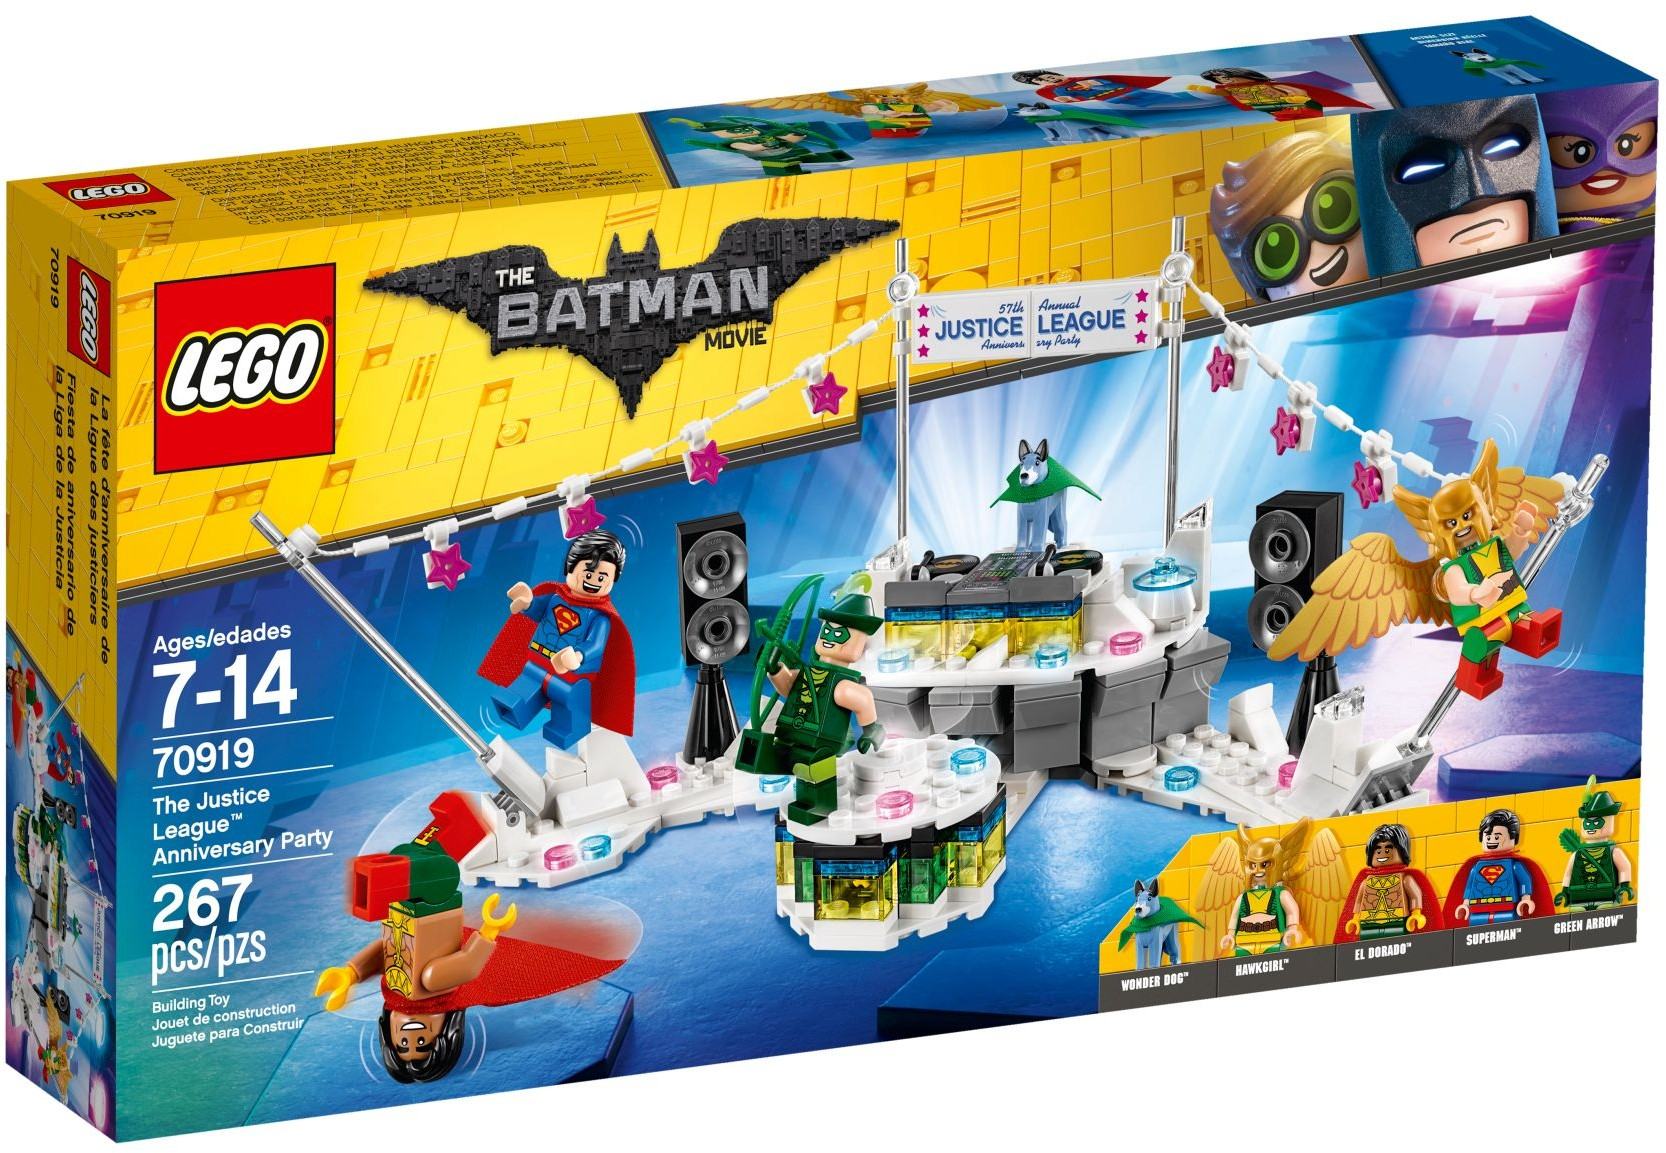 70919 The Justice League Anniversary Party